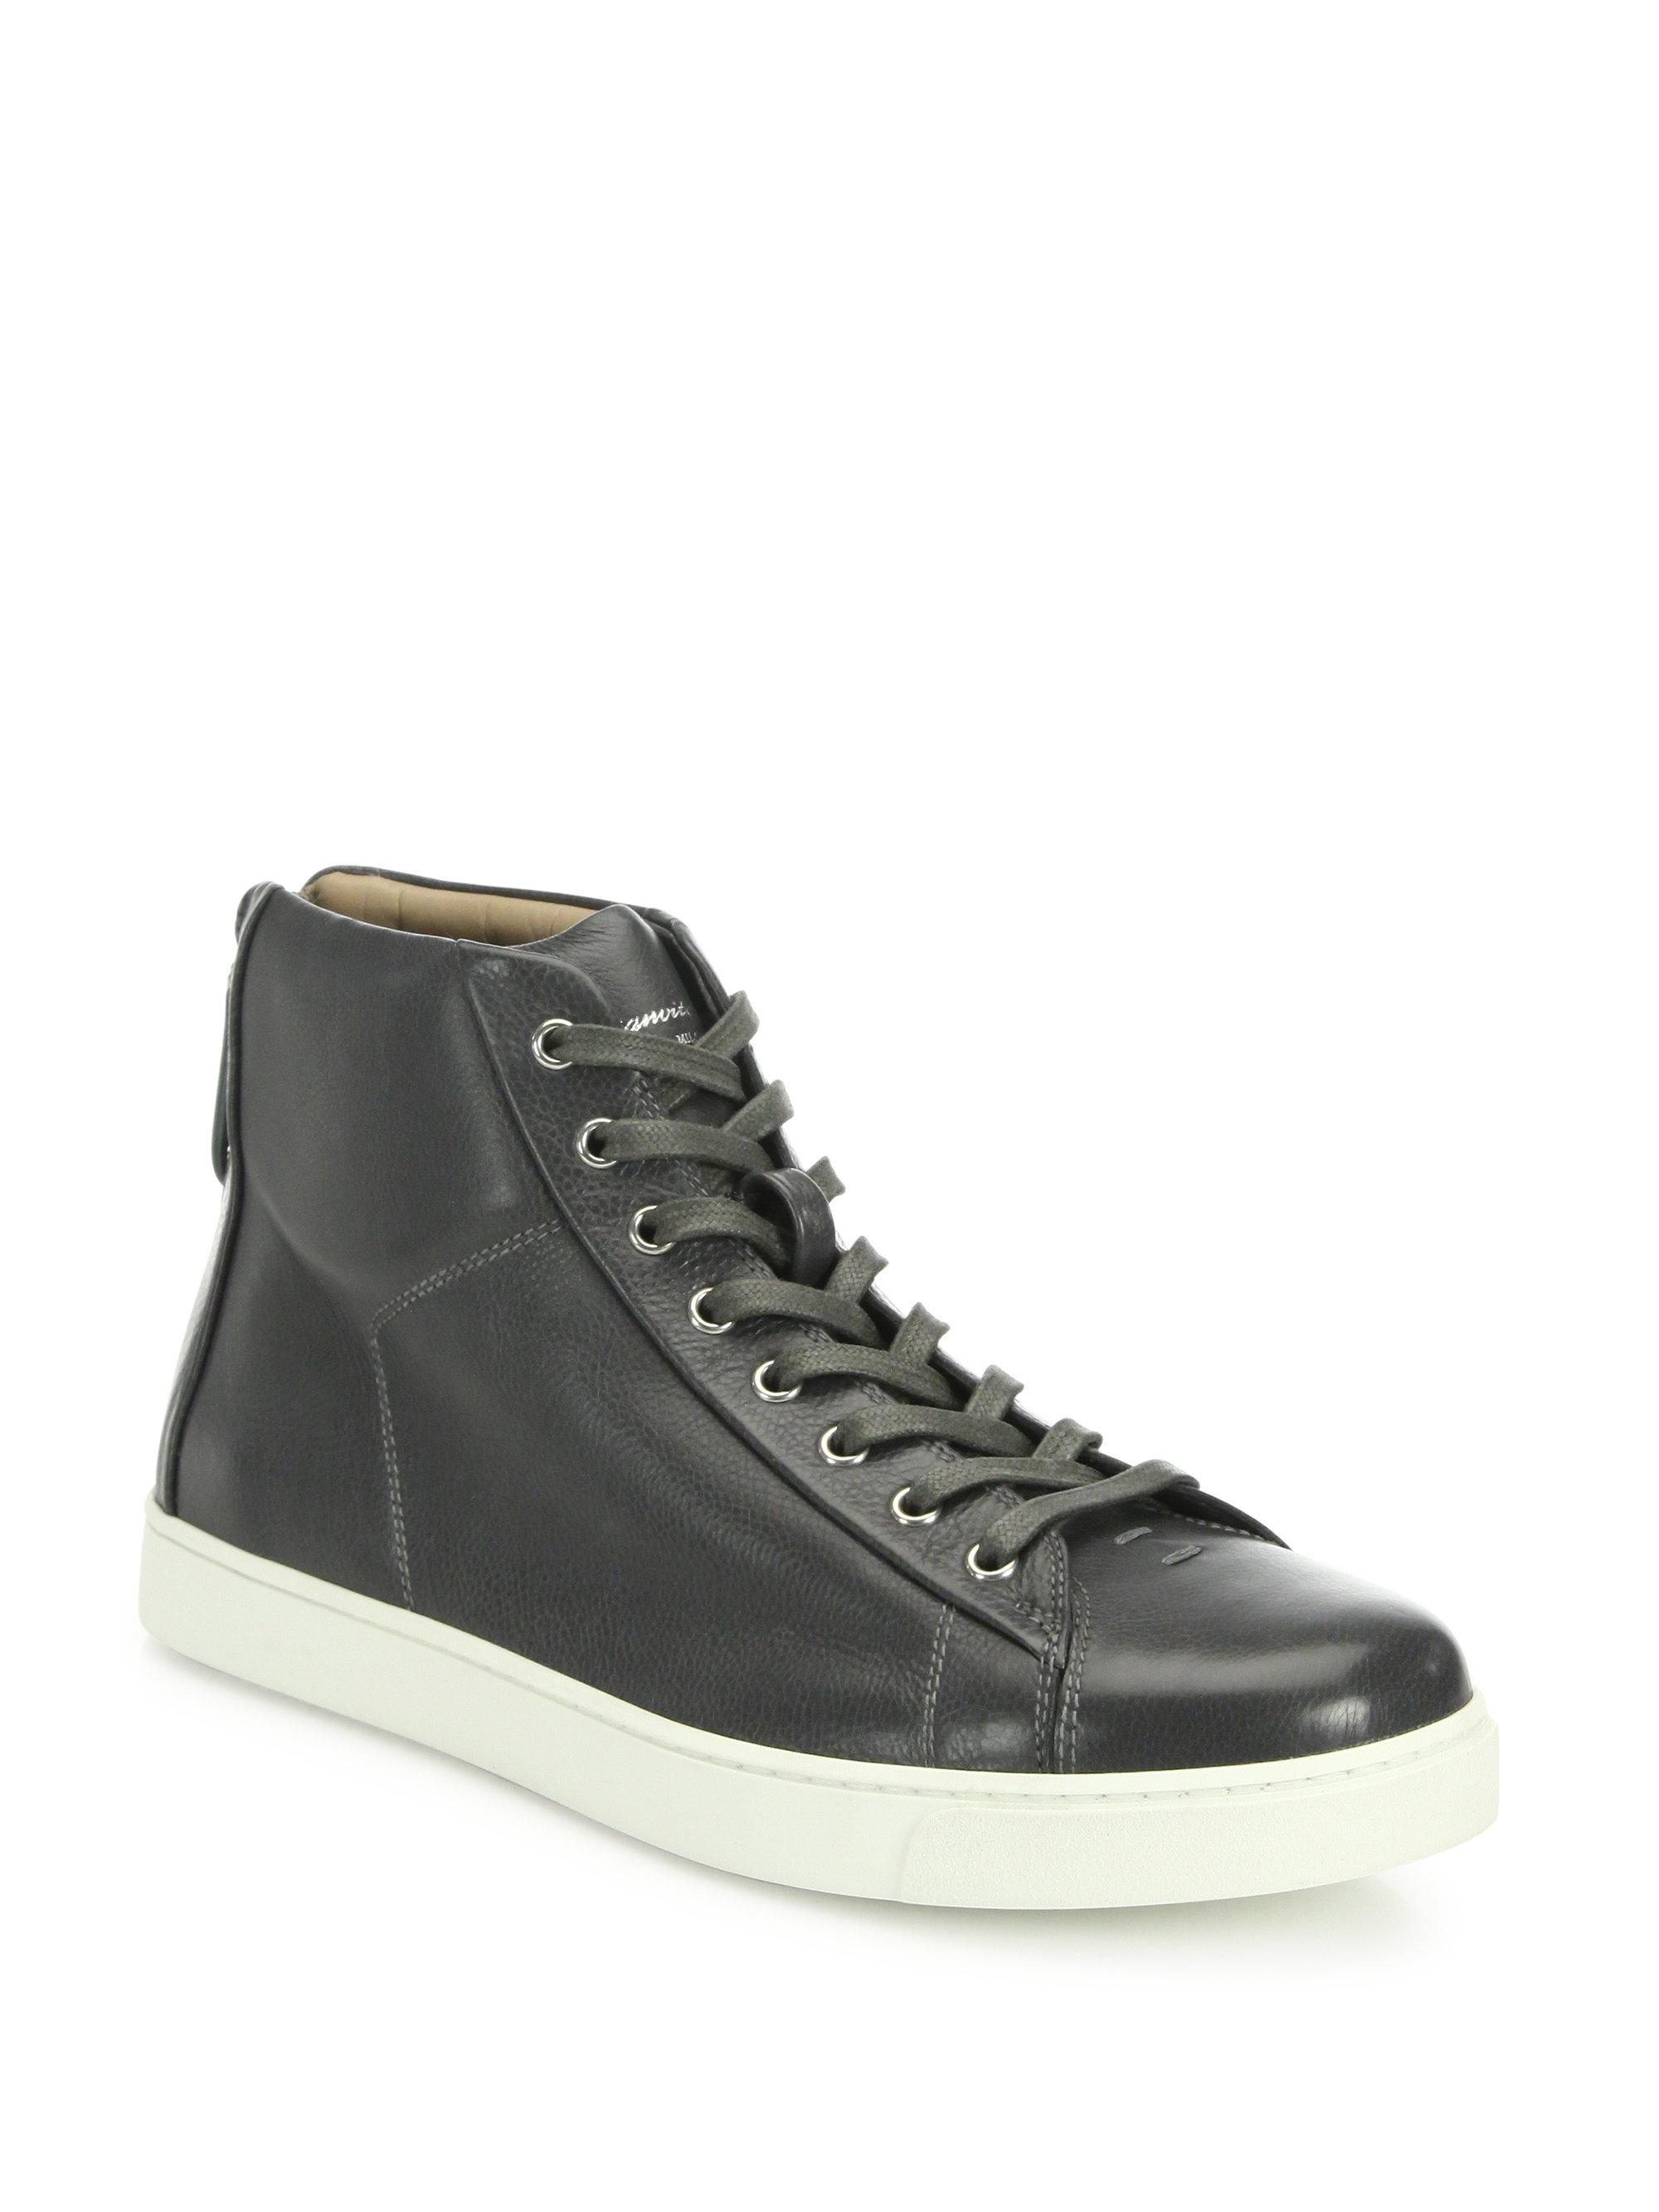 Mens Peter Leather Sneakers Gianvito Rossi uoHkyuSfC